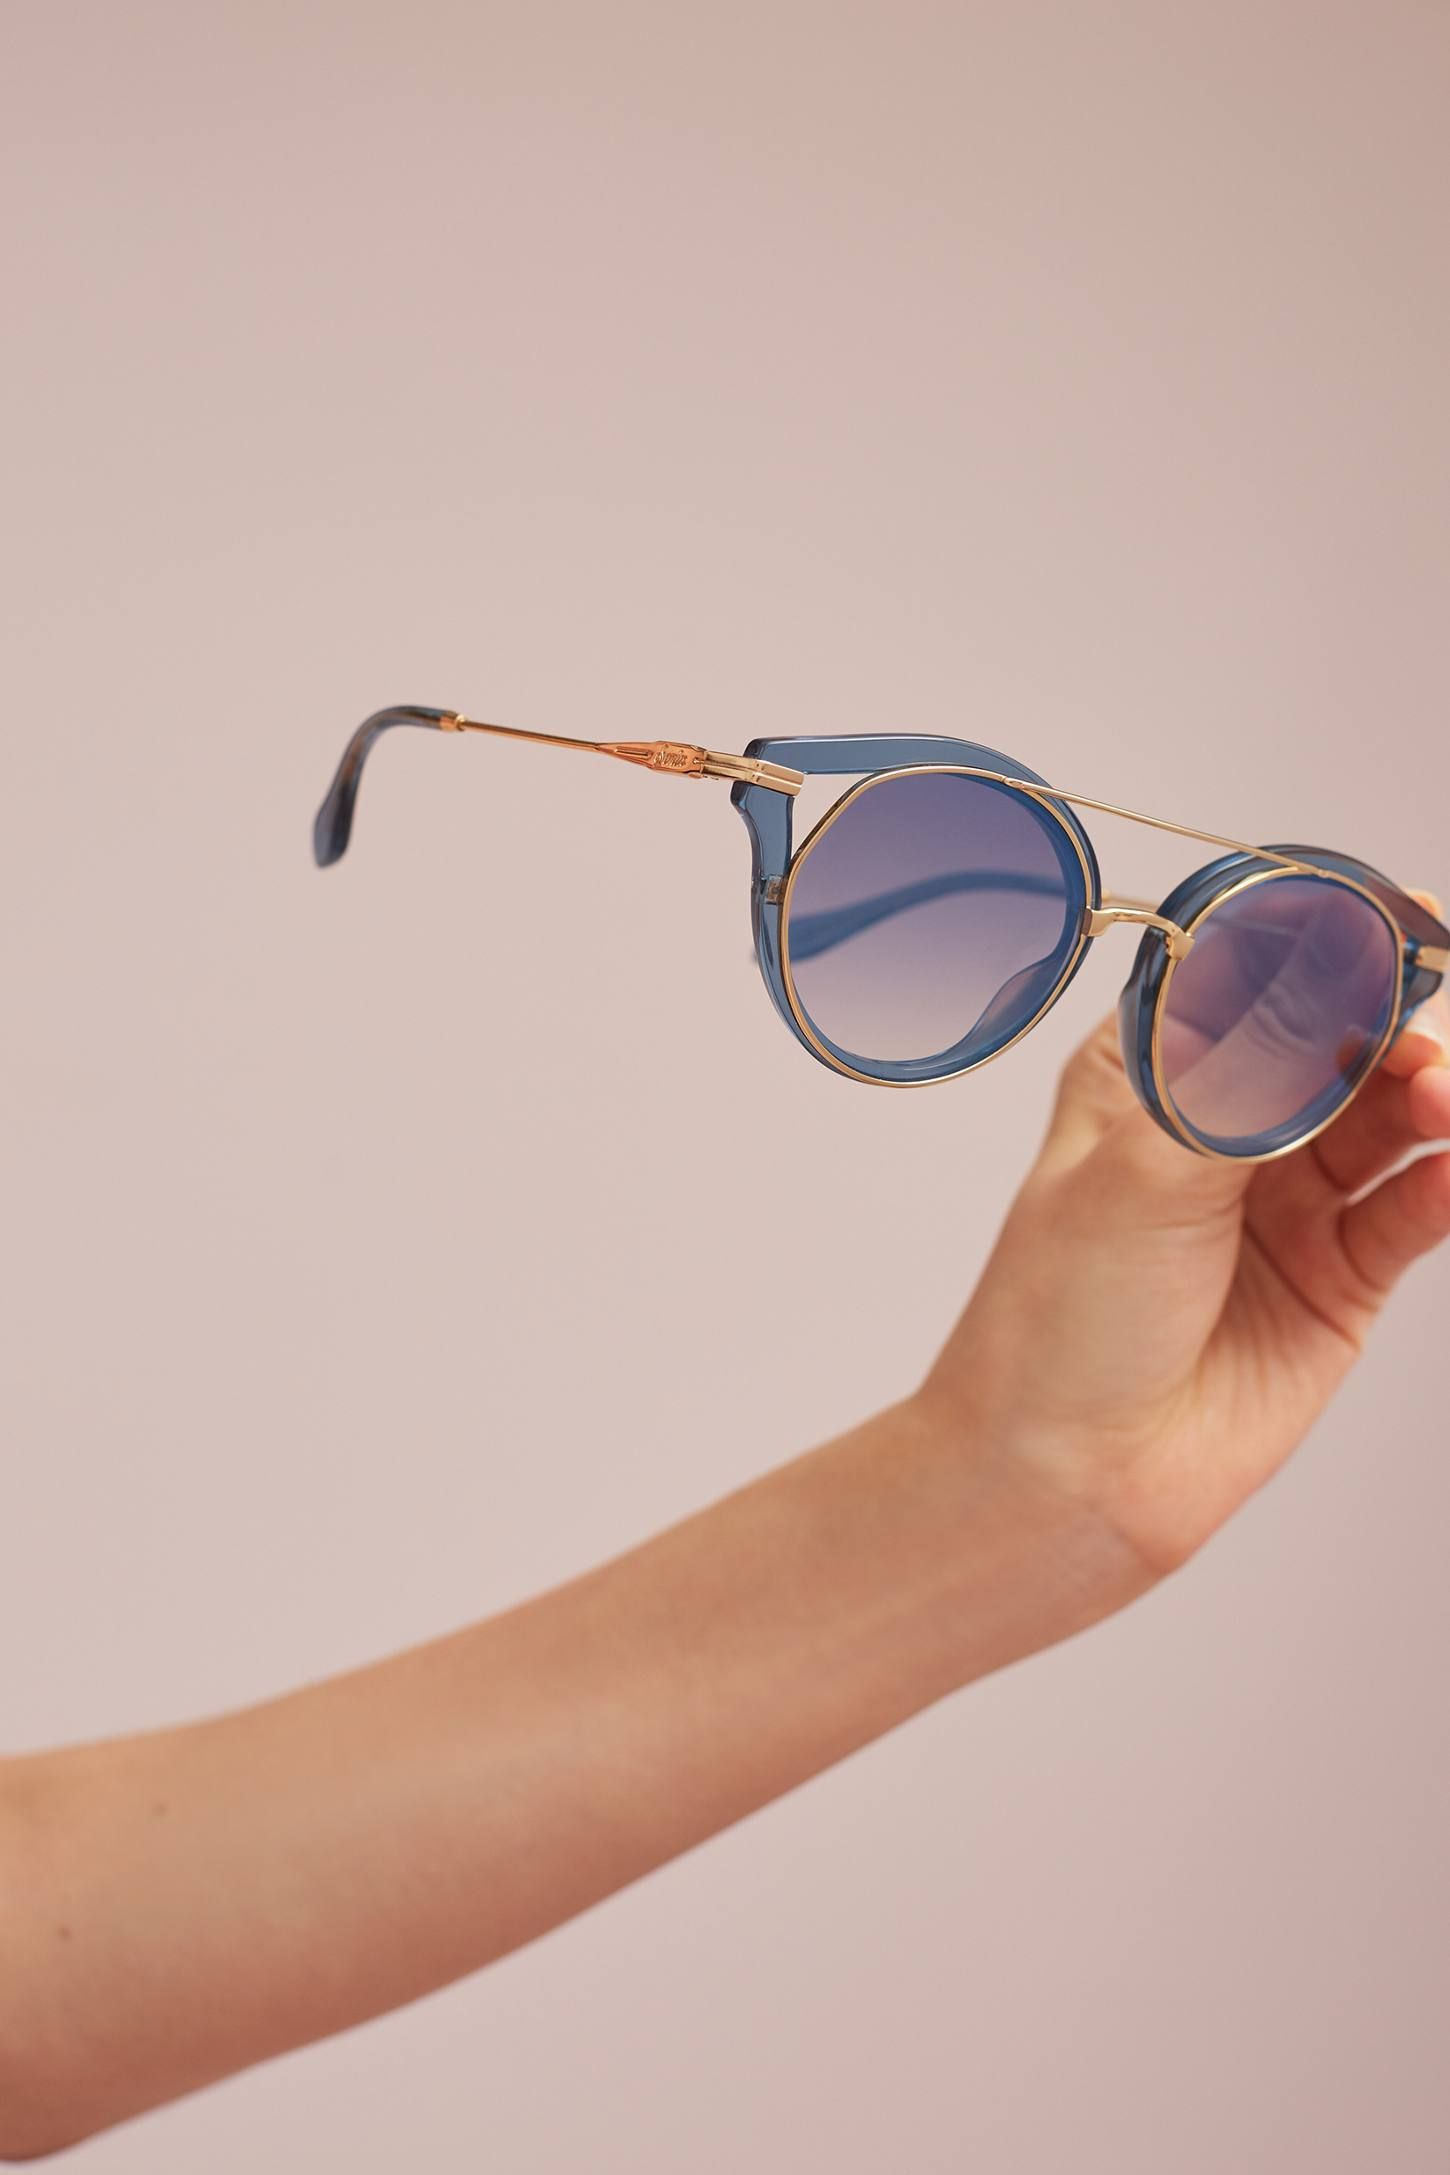 67cd722912d Shop the Sonix Preston June Sunglasses and more Anthropologie at  Anthropologie today. Read customer reviews